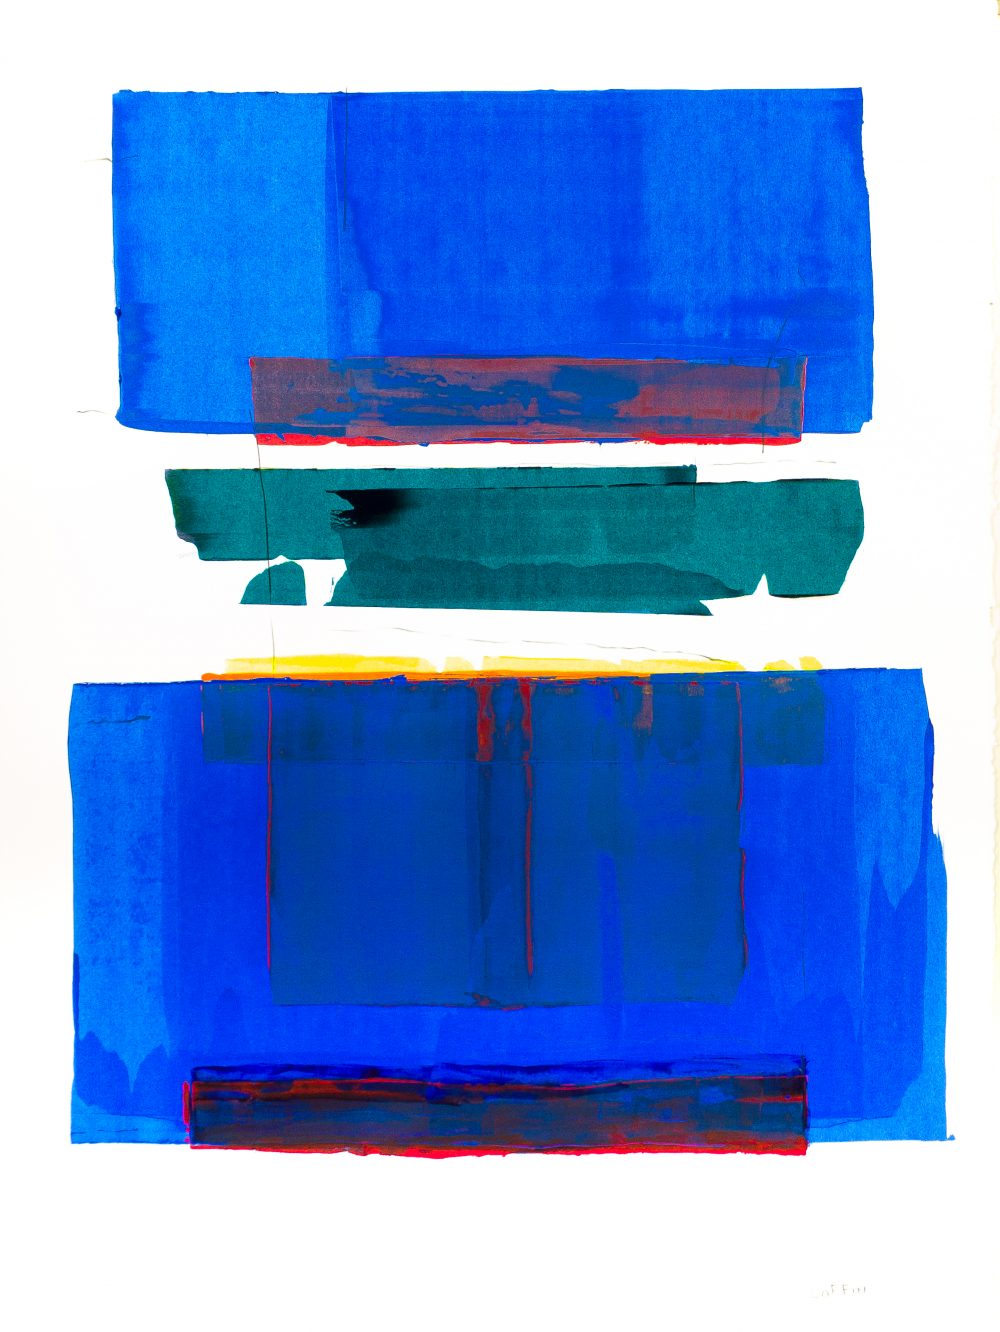 Untitled 1/20 No. 12, acrylic on paper, 30 x 22 inches